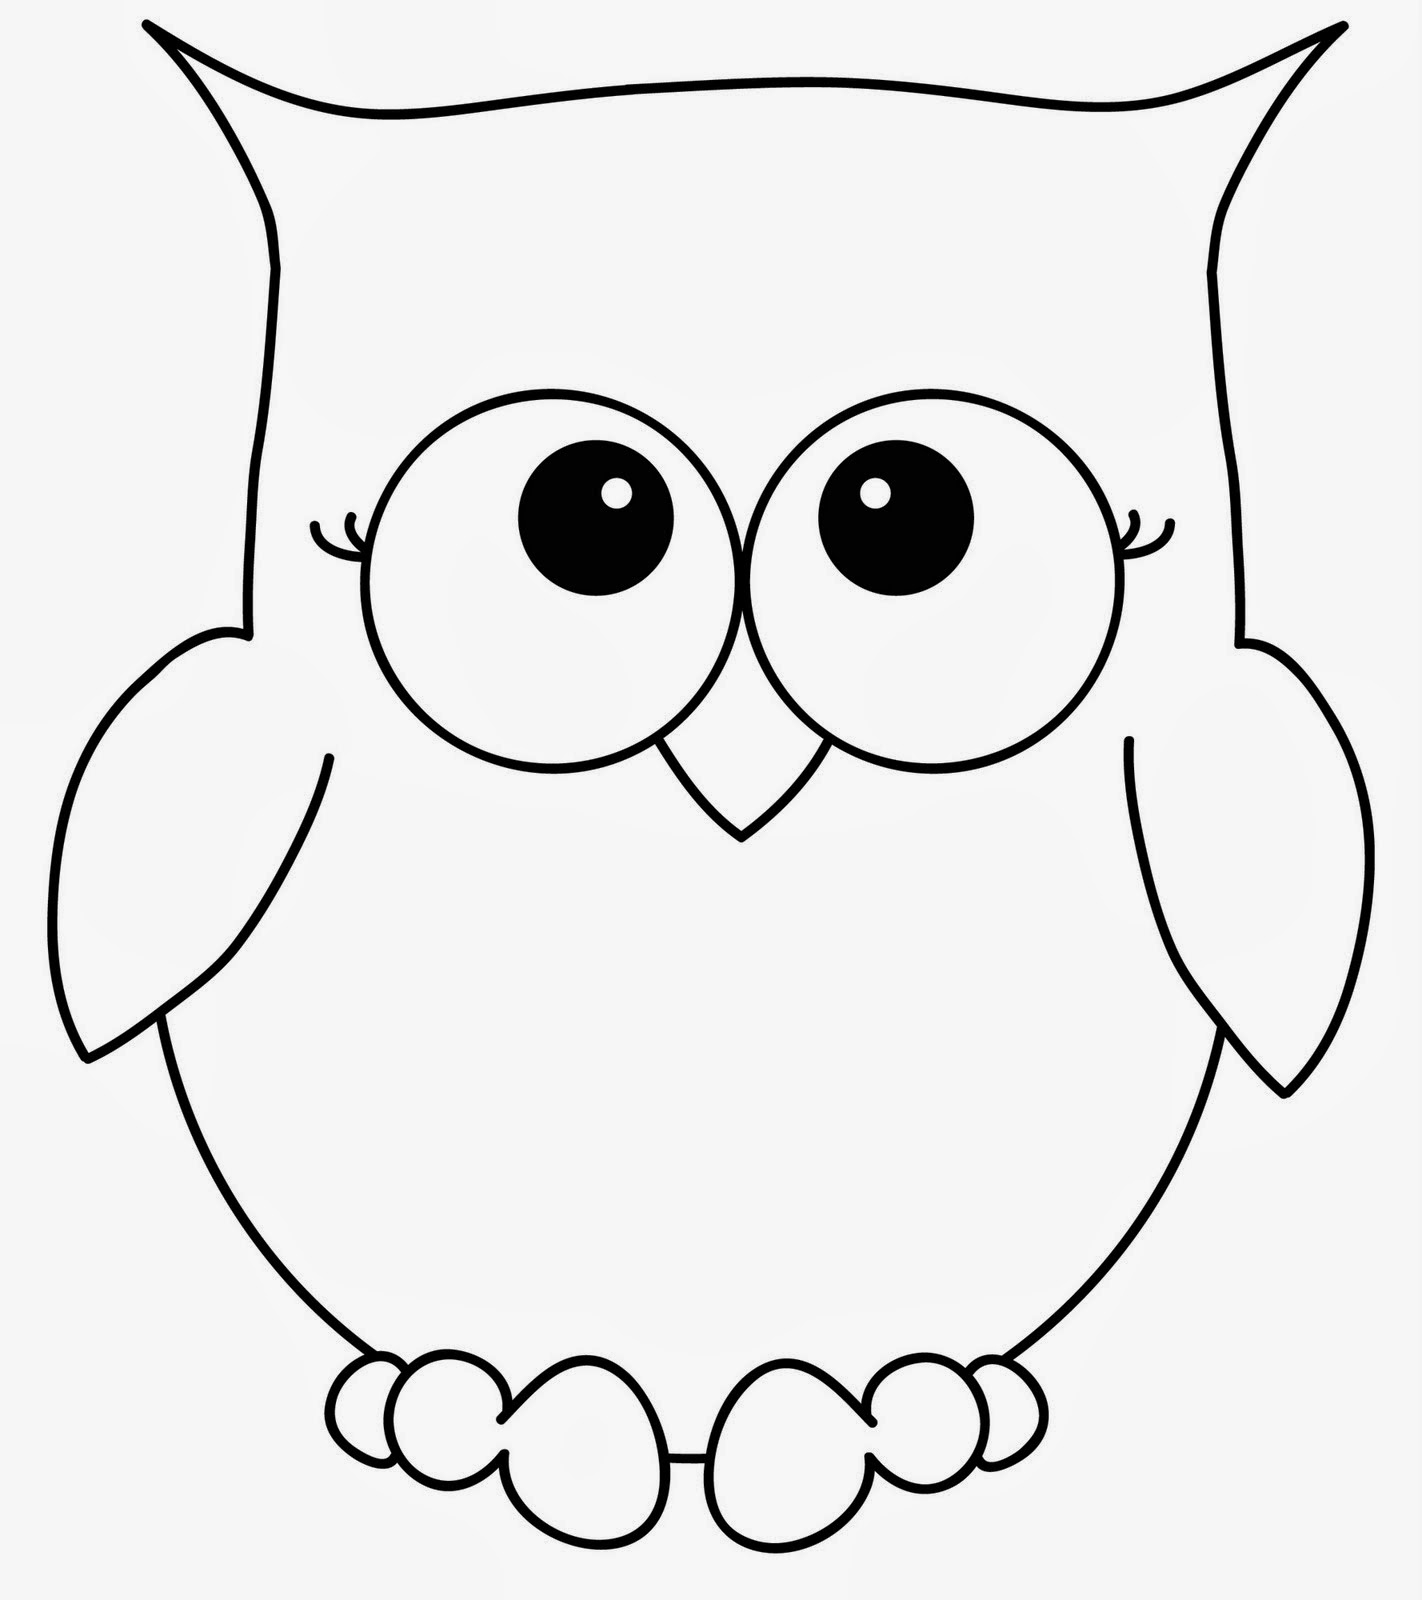 owl print out coloring pages free printable owl coloring pages for kids cool2bkids pages print coloring out owl